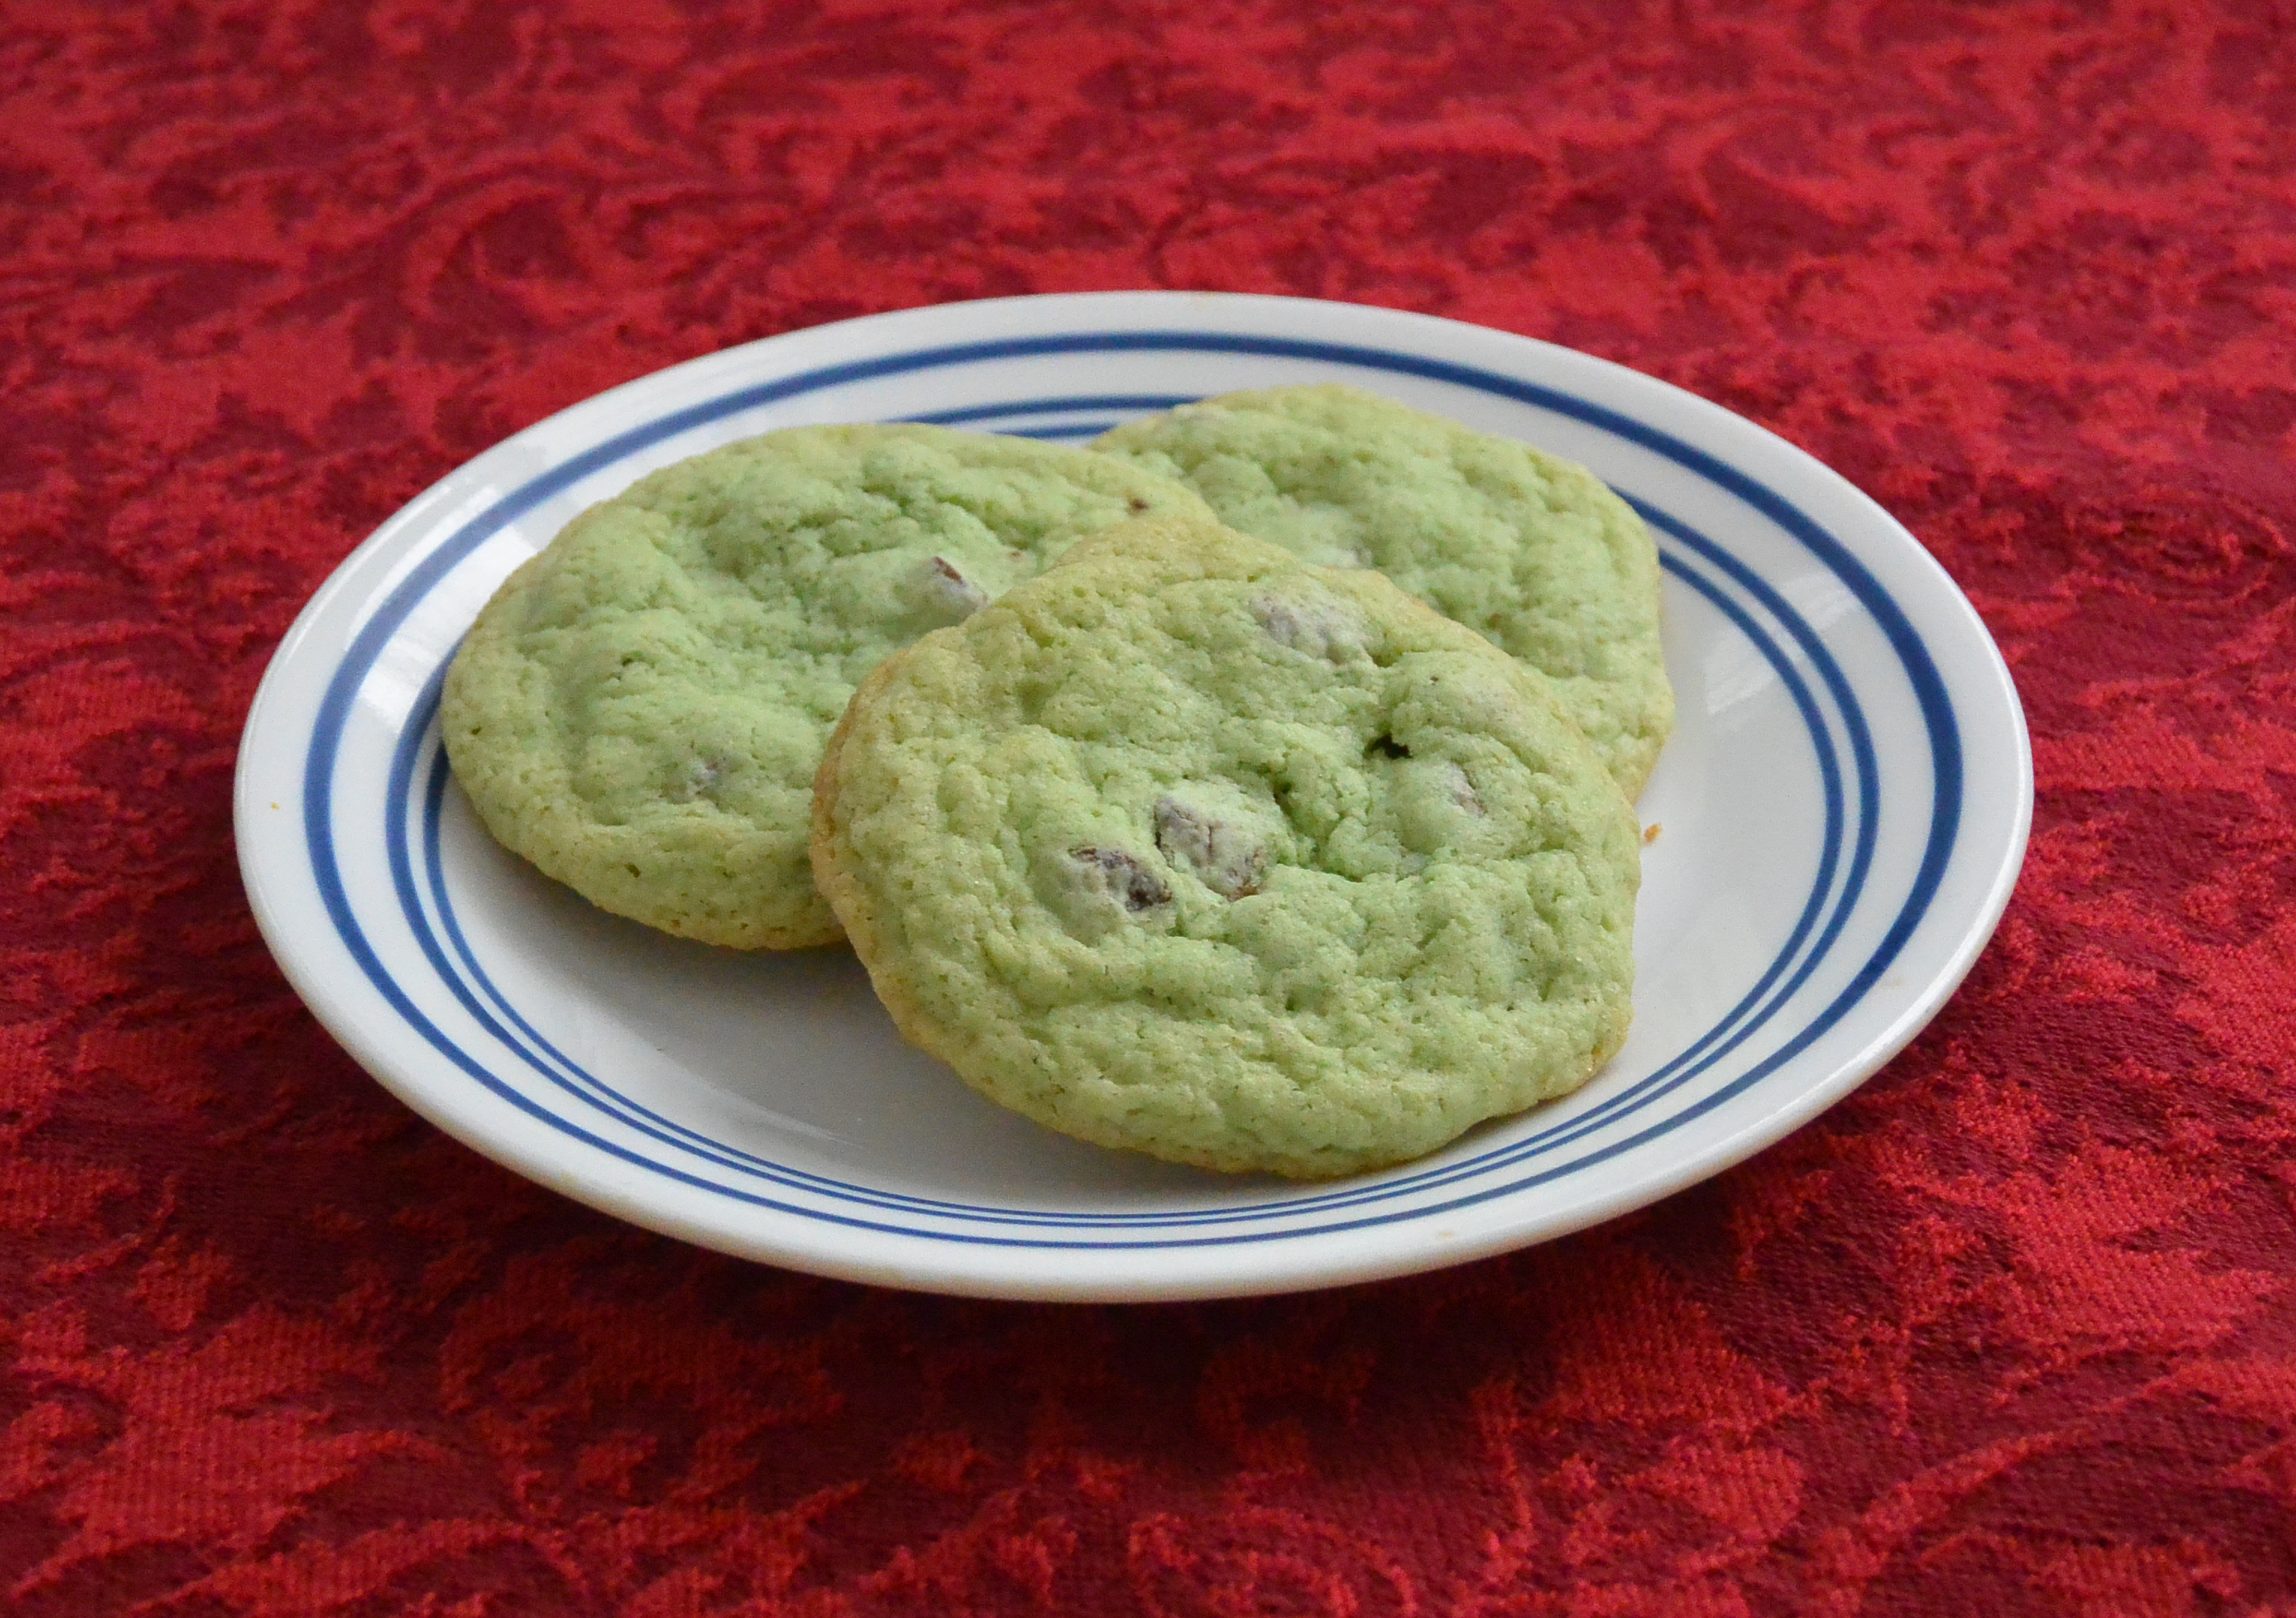 Gluten-Free Mint Chocolate Chip Cookies